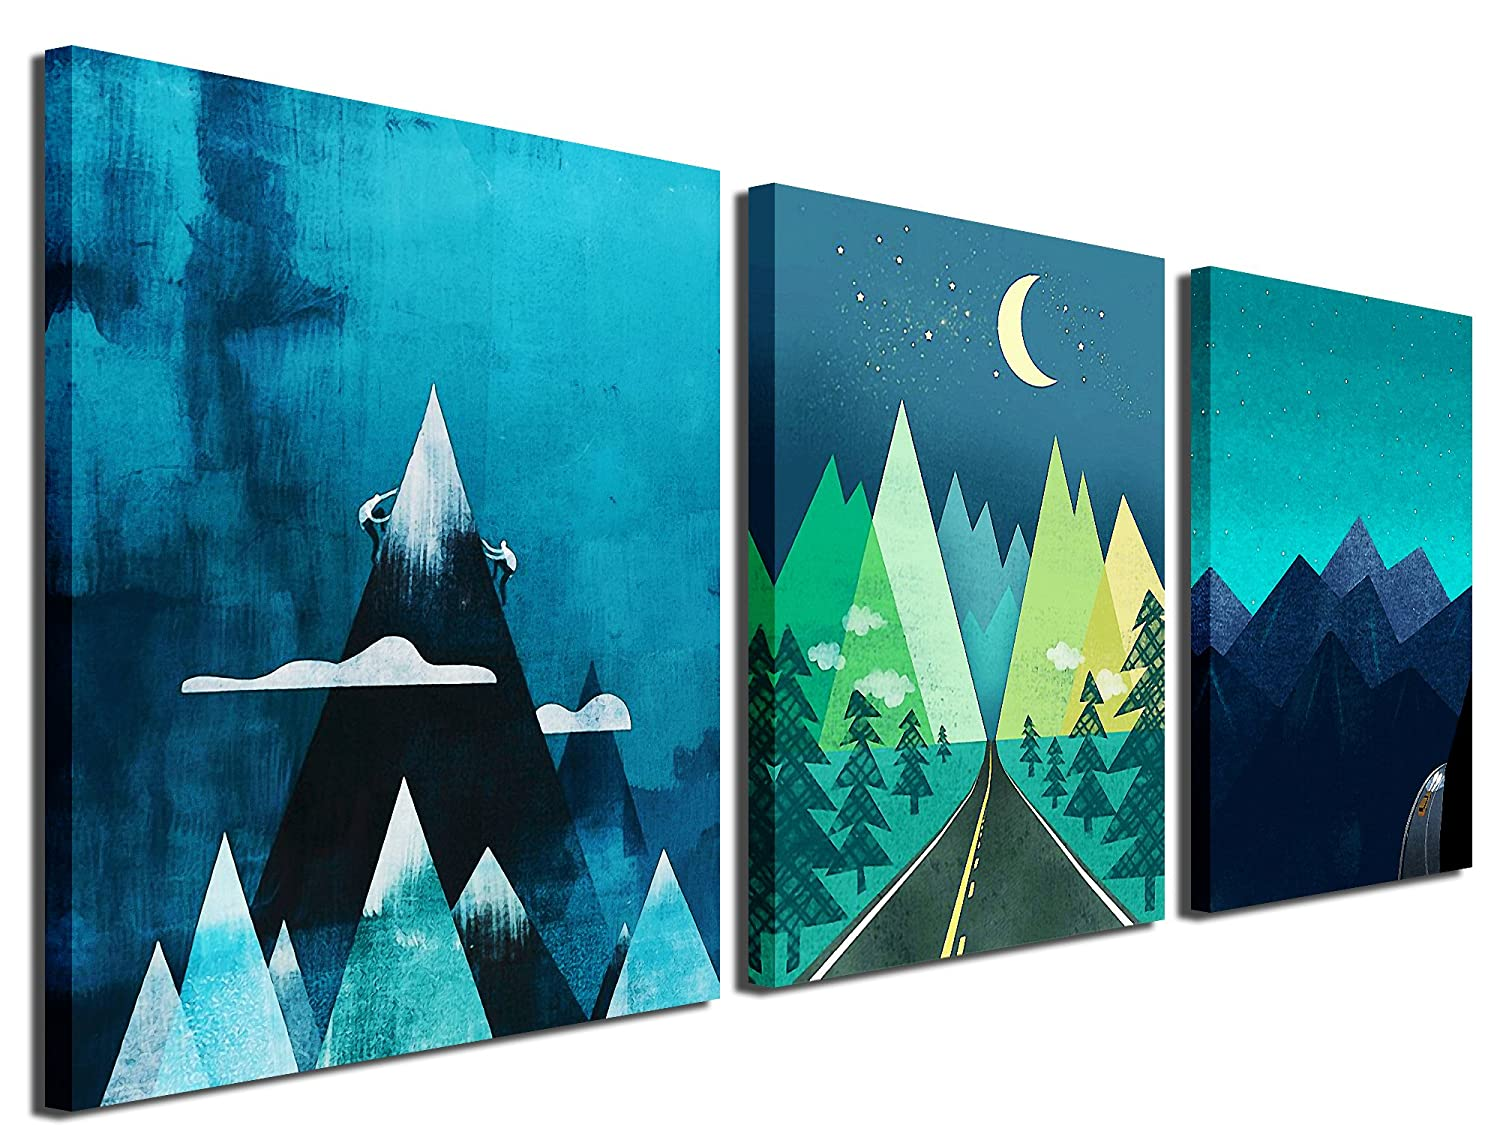 Gardenia art abstract mountain at night canvas prints wall art paintings abstract geometry wall artworks pictures for living room bedroom decoration